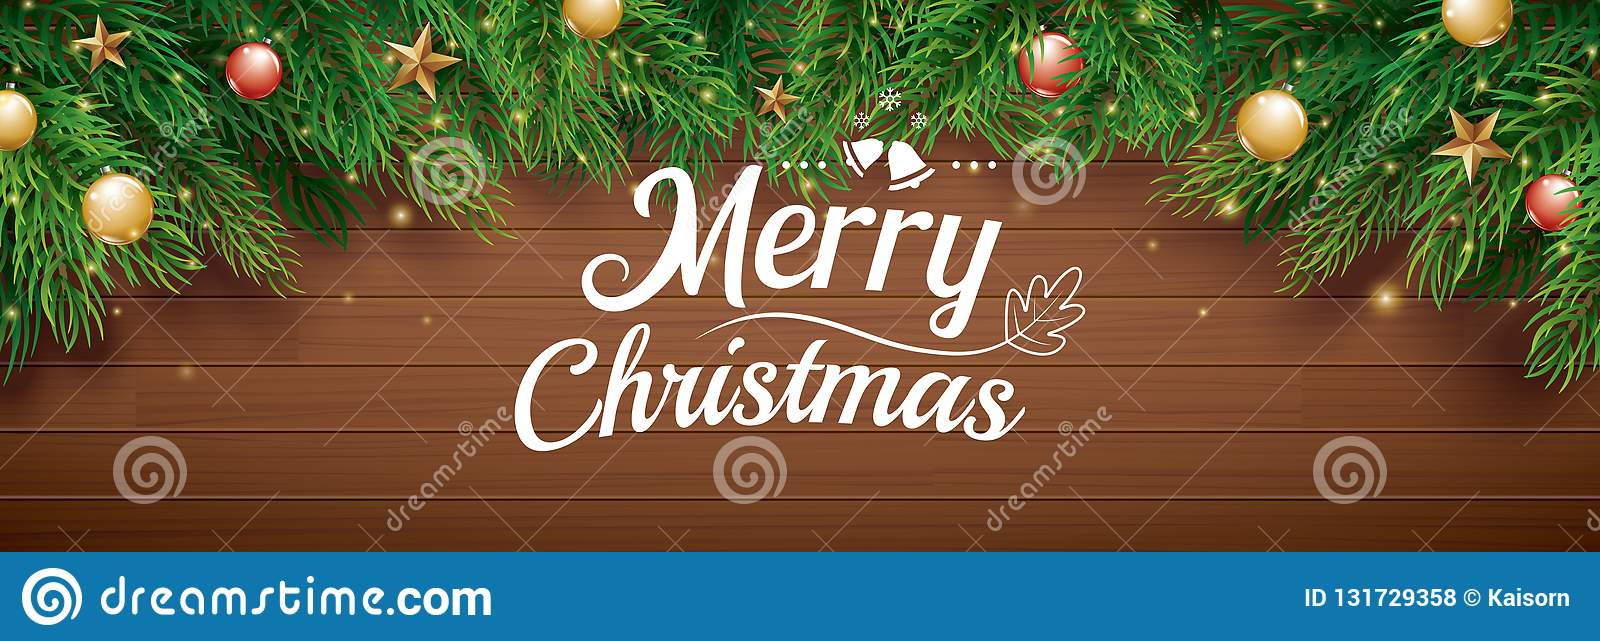 Christmas greeting card with fir tree on wooden background. Xmas and happy new year for banner, cover